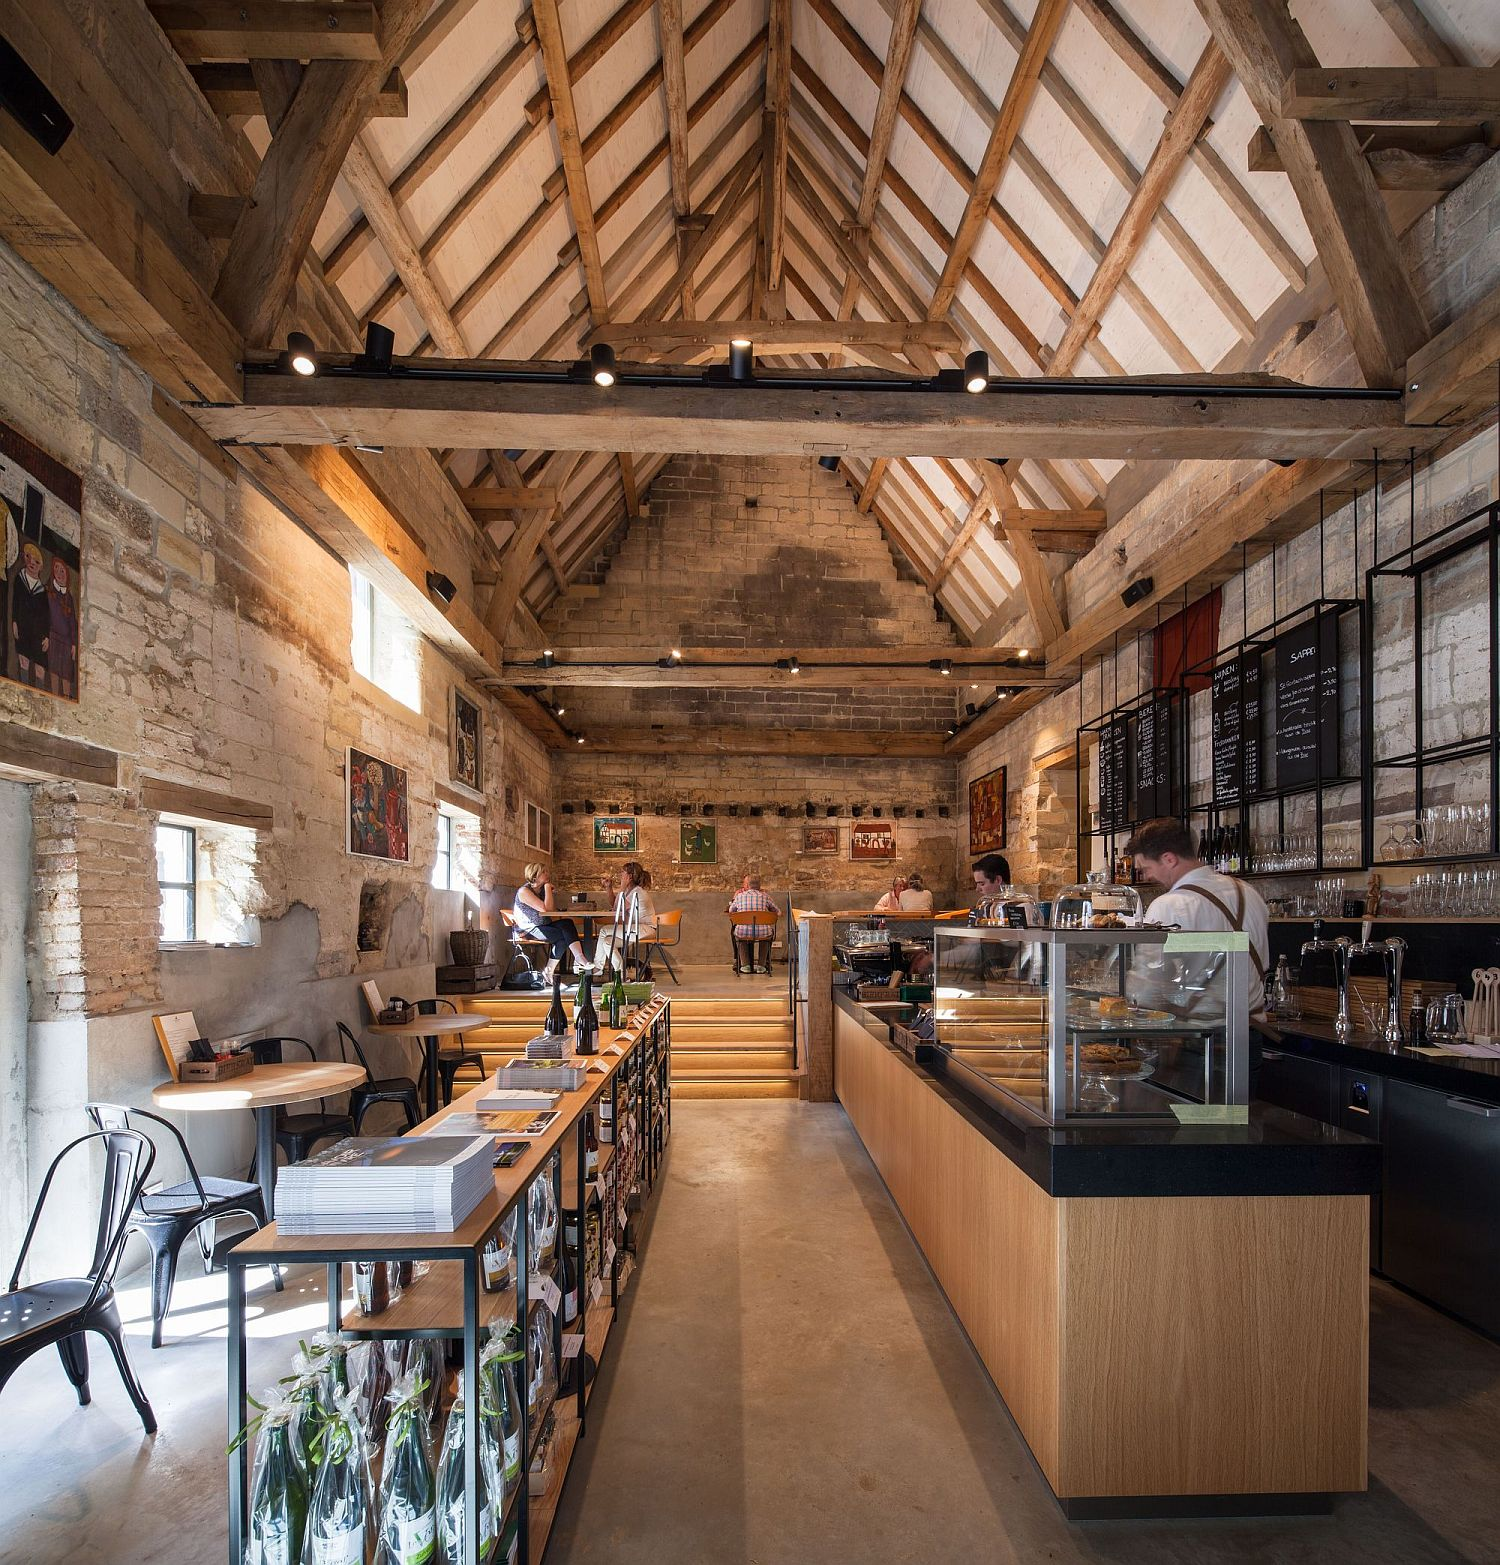 Manor Farm revamped into a restaurant, coffee house and meeting space